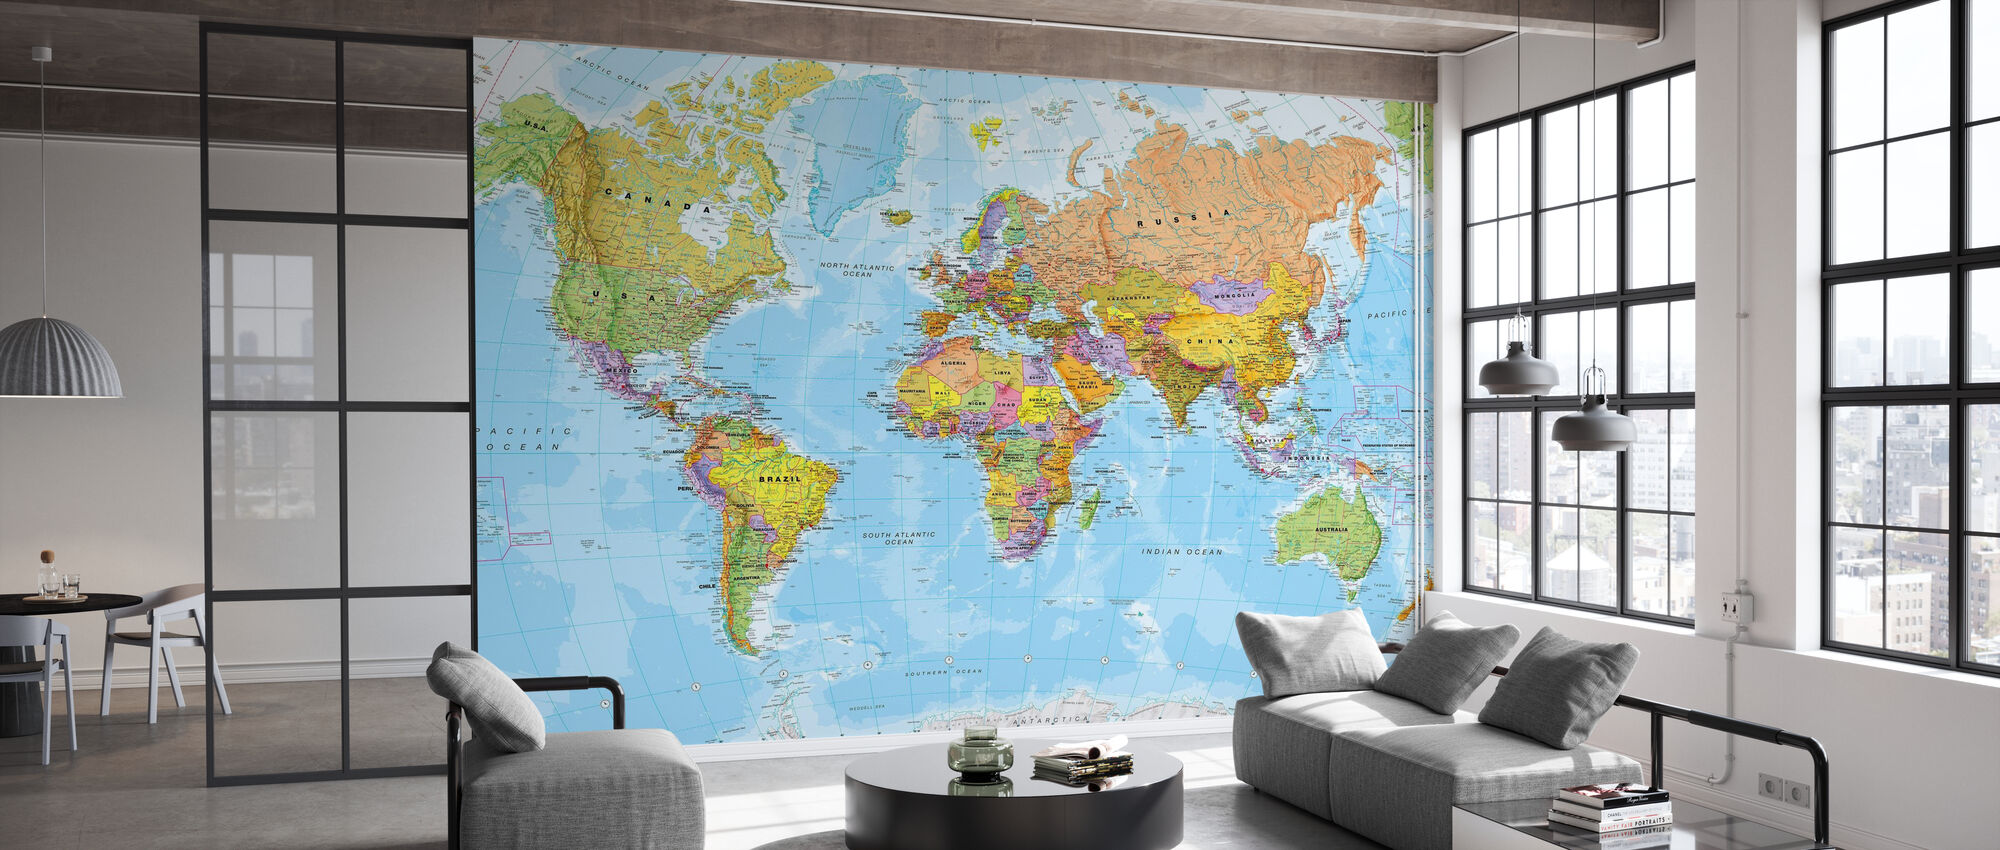 Political World Map - Wallpaper - Office